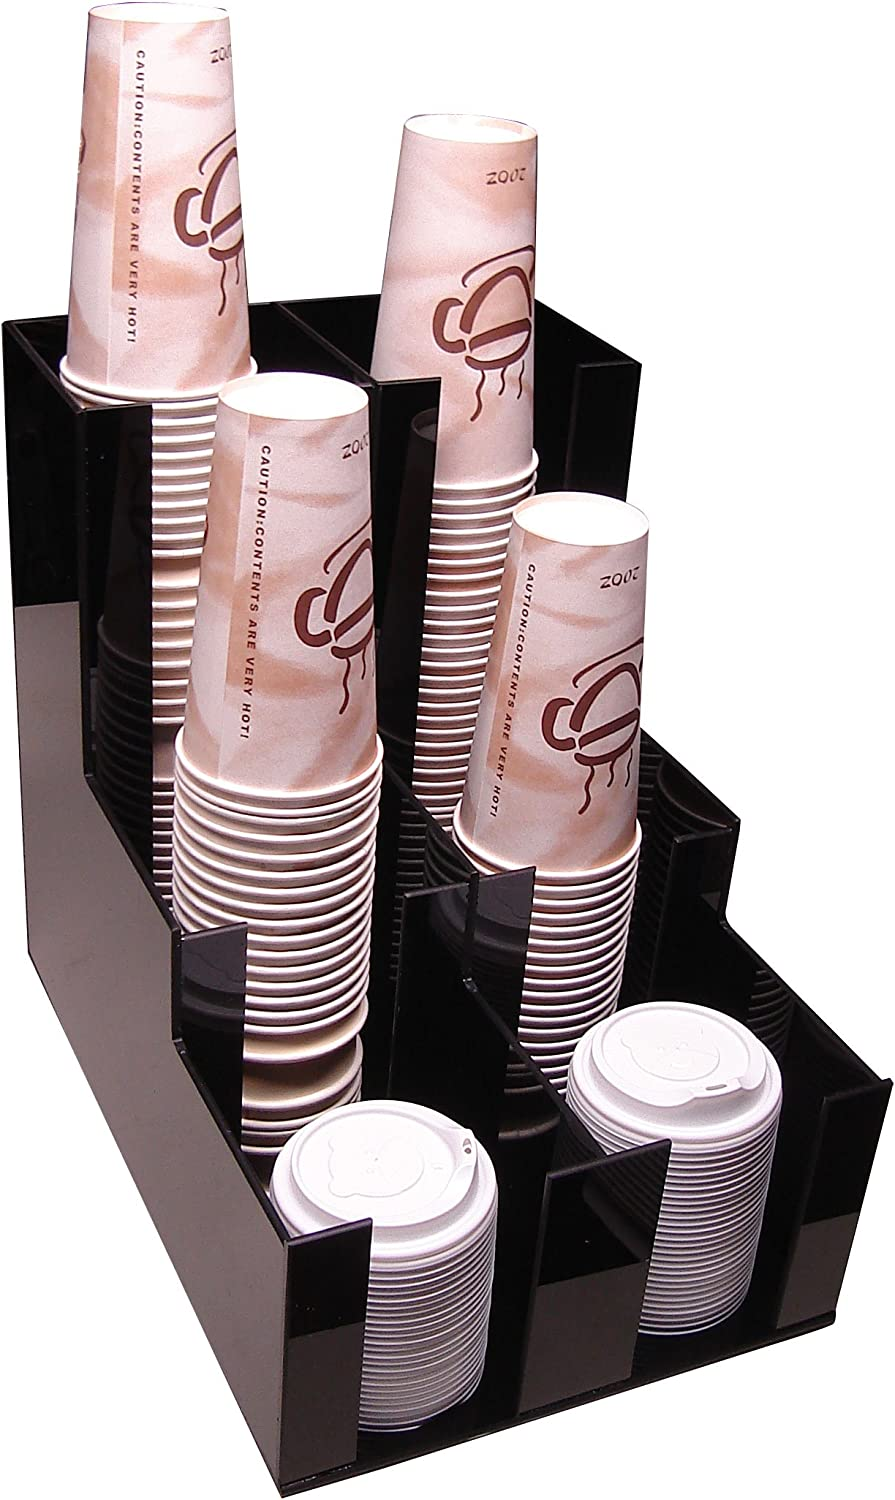 Cup Lid Holder Dispenser Coffee Cup Beverage Caddy Countertop Organizer 2wx3d Organize Your Coffee Counter with Style (1007) Heavy Duty